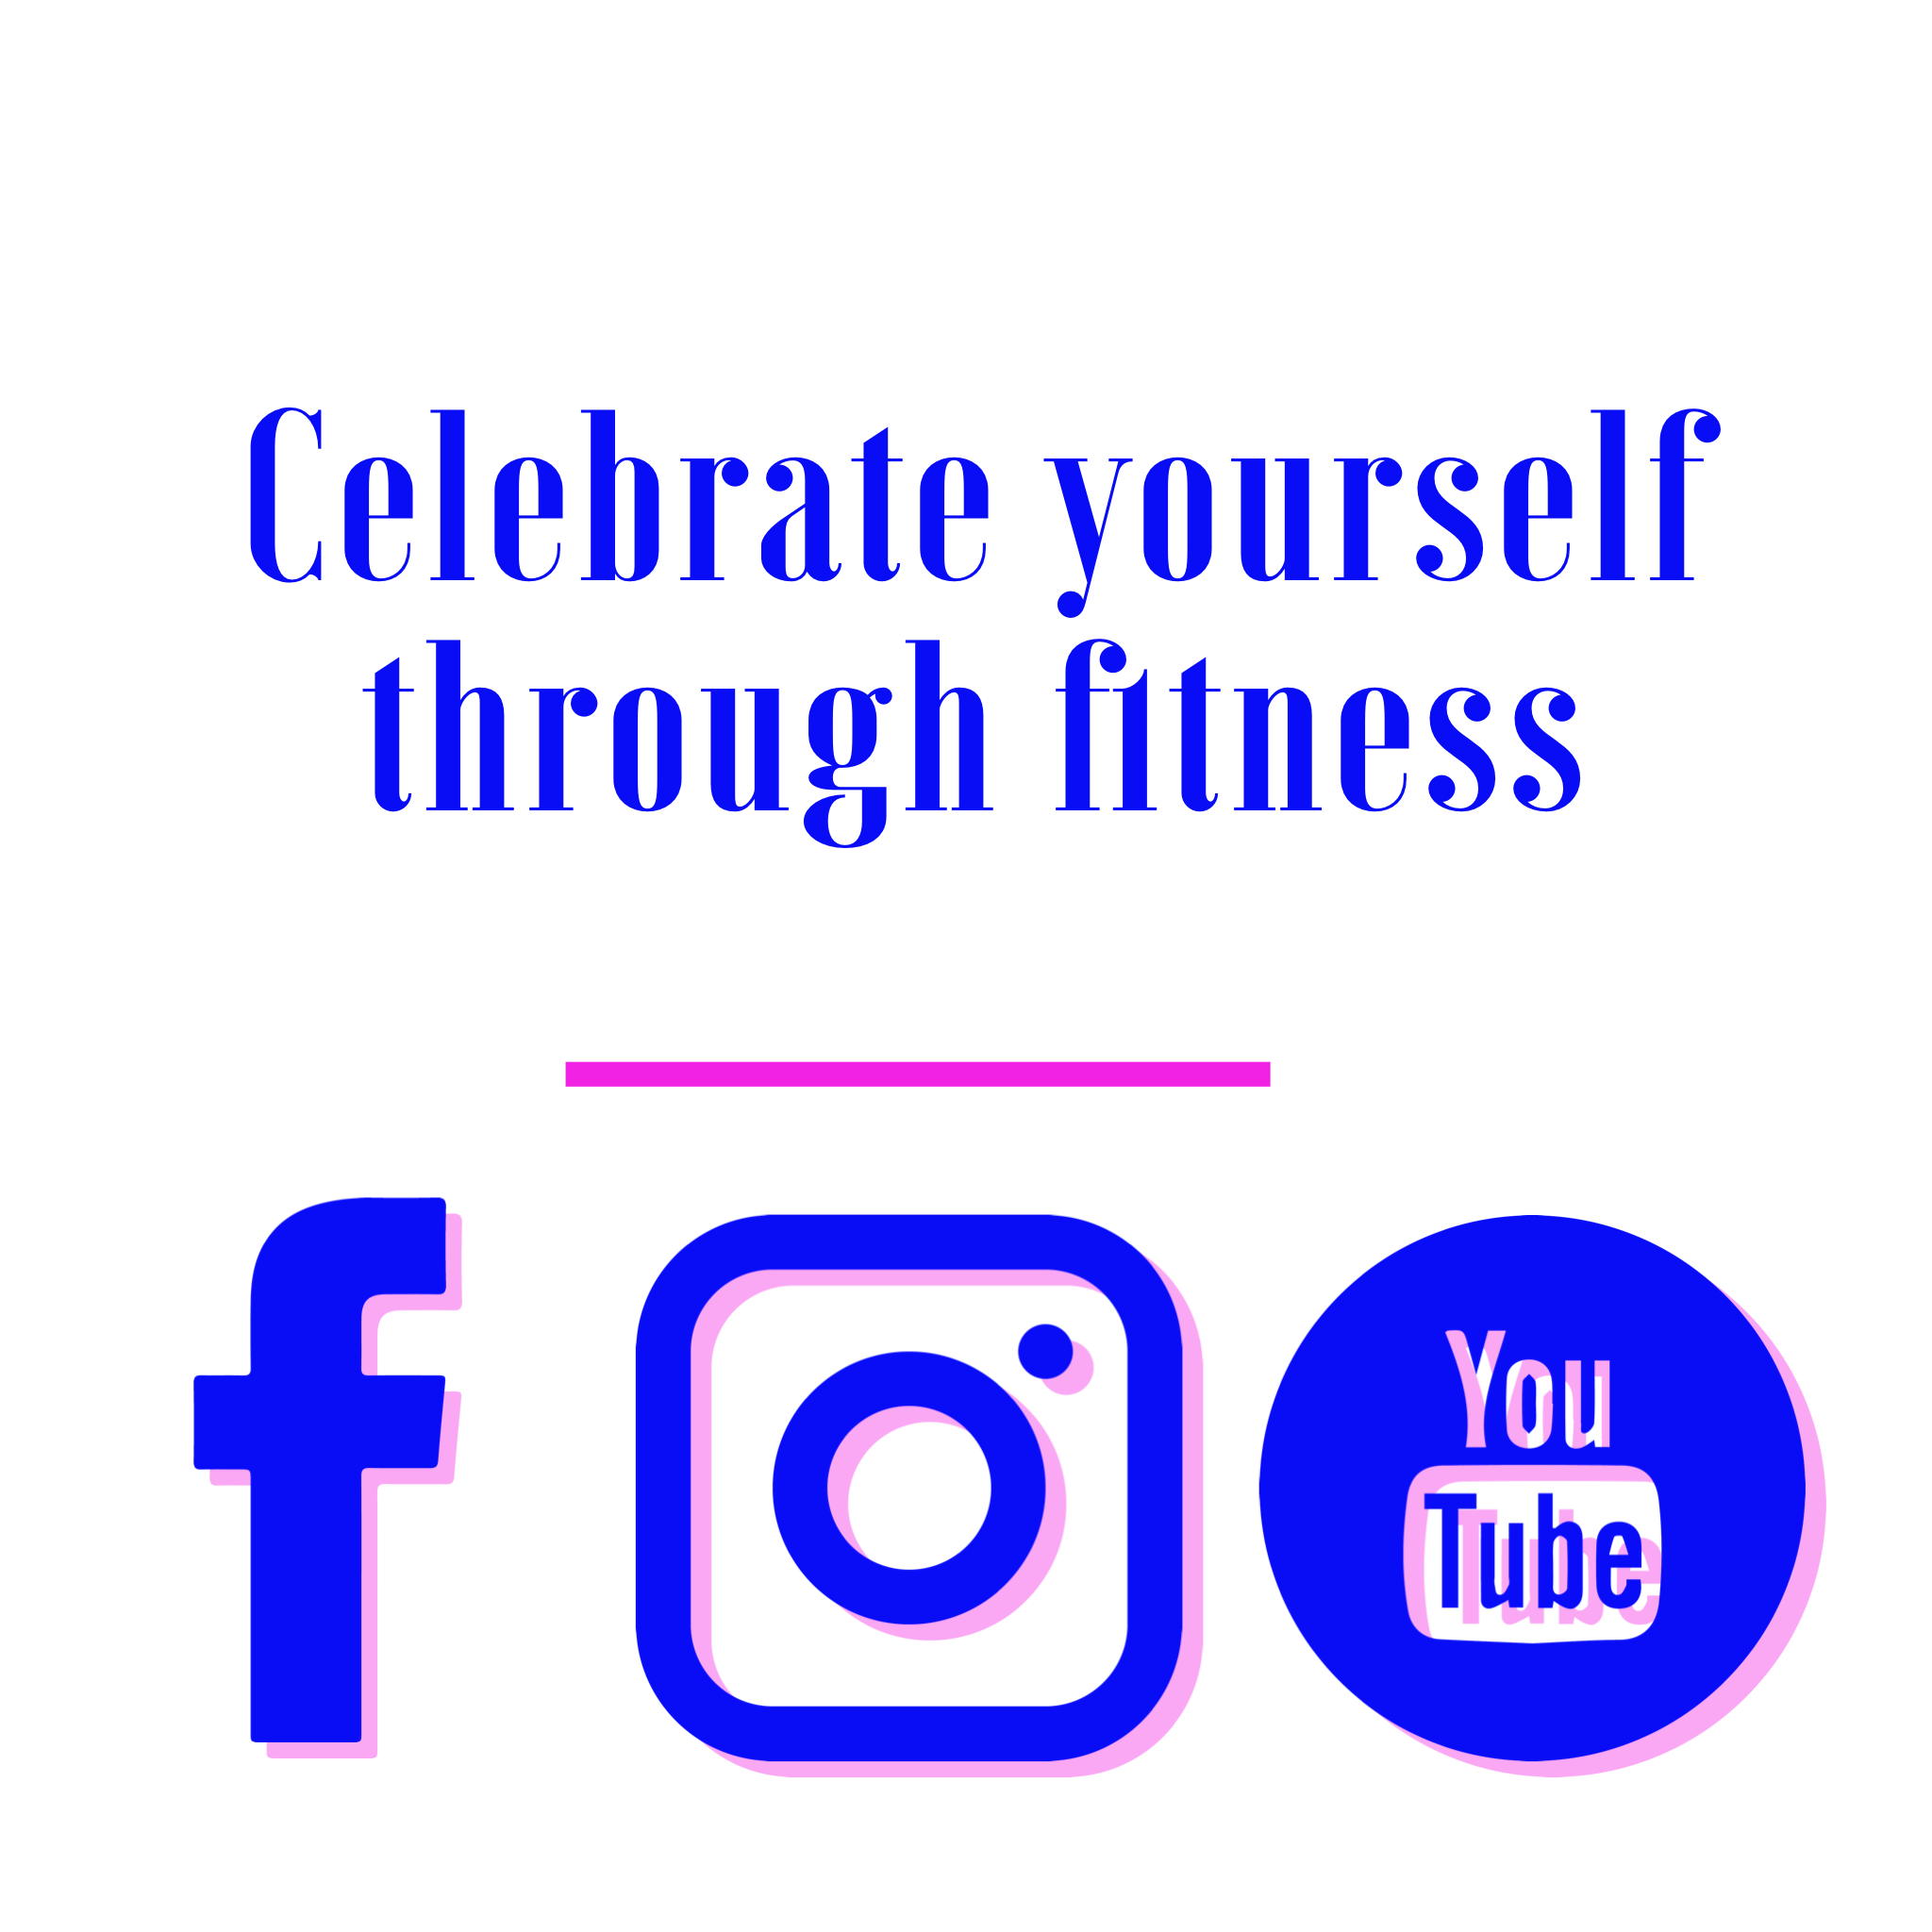 Celebrate yourself through fitness